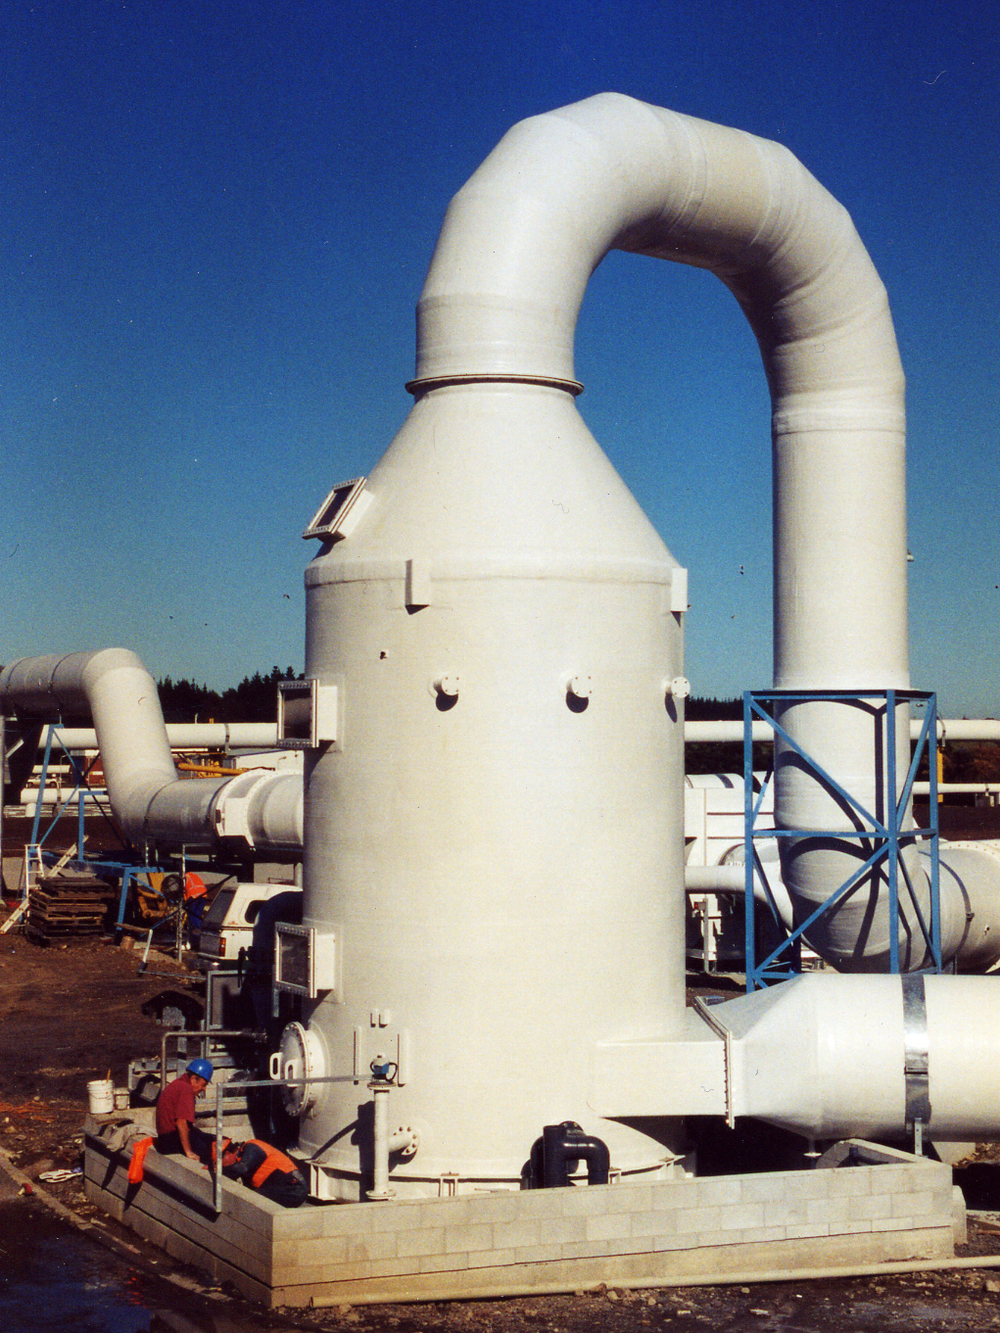 P  Ammonia Scrubber and Fibreglass Ducting at Wastewater